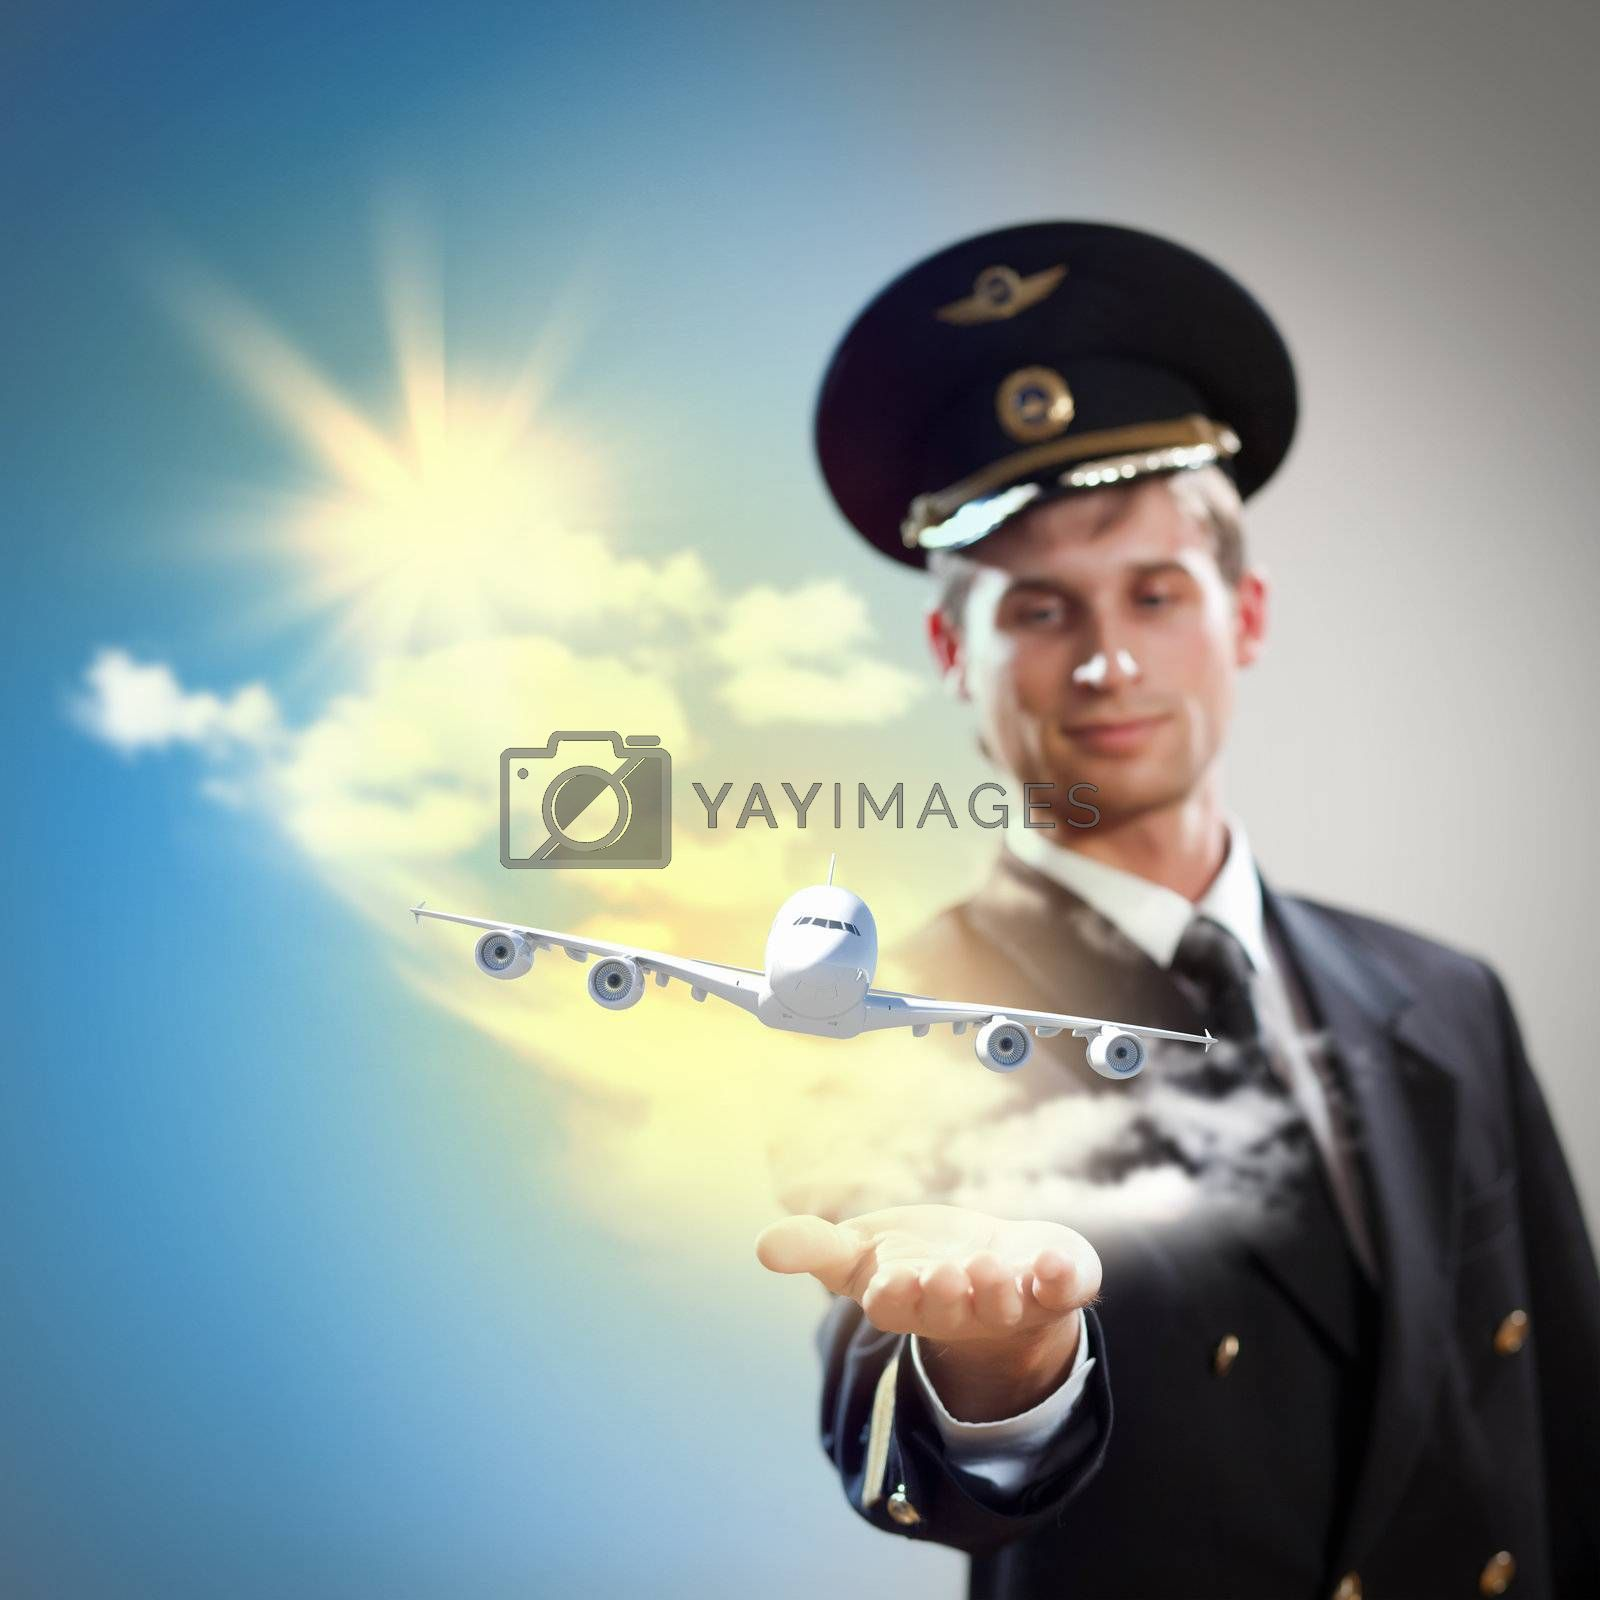 Image of pilot with airplane taking off from his hand